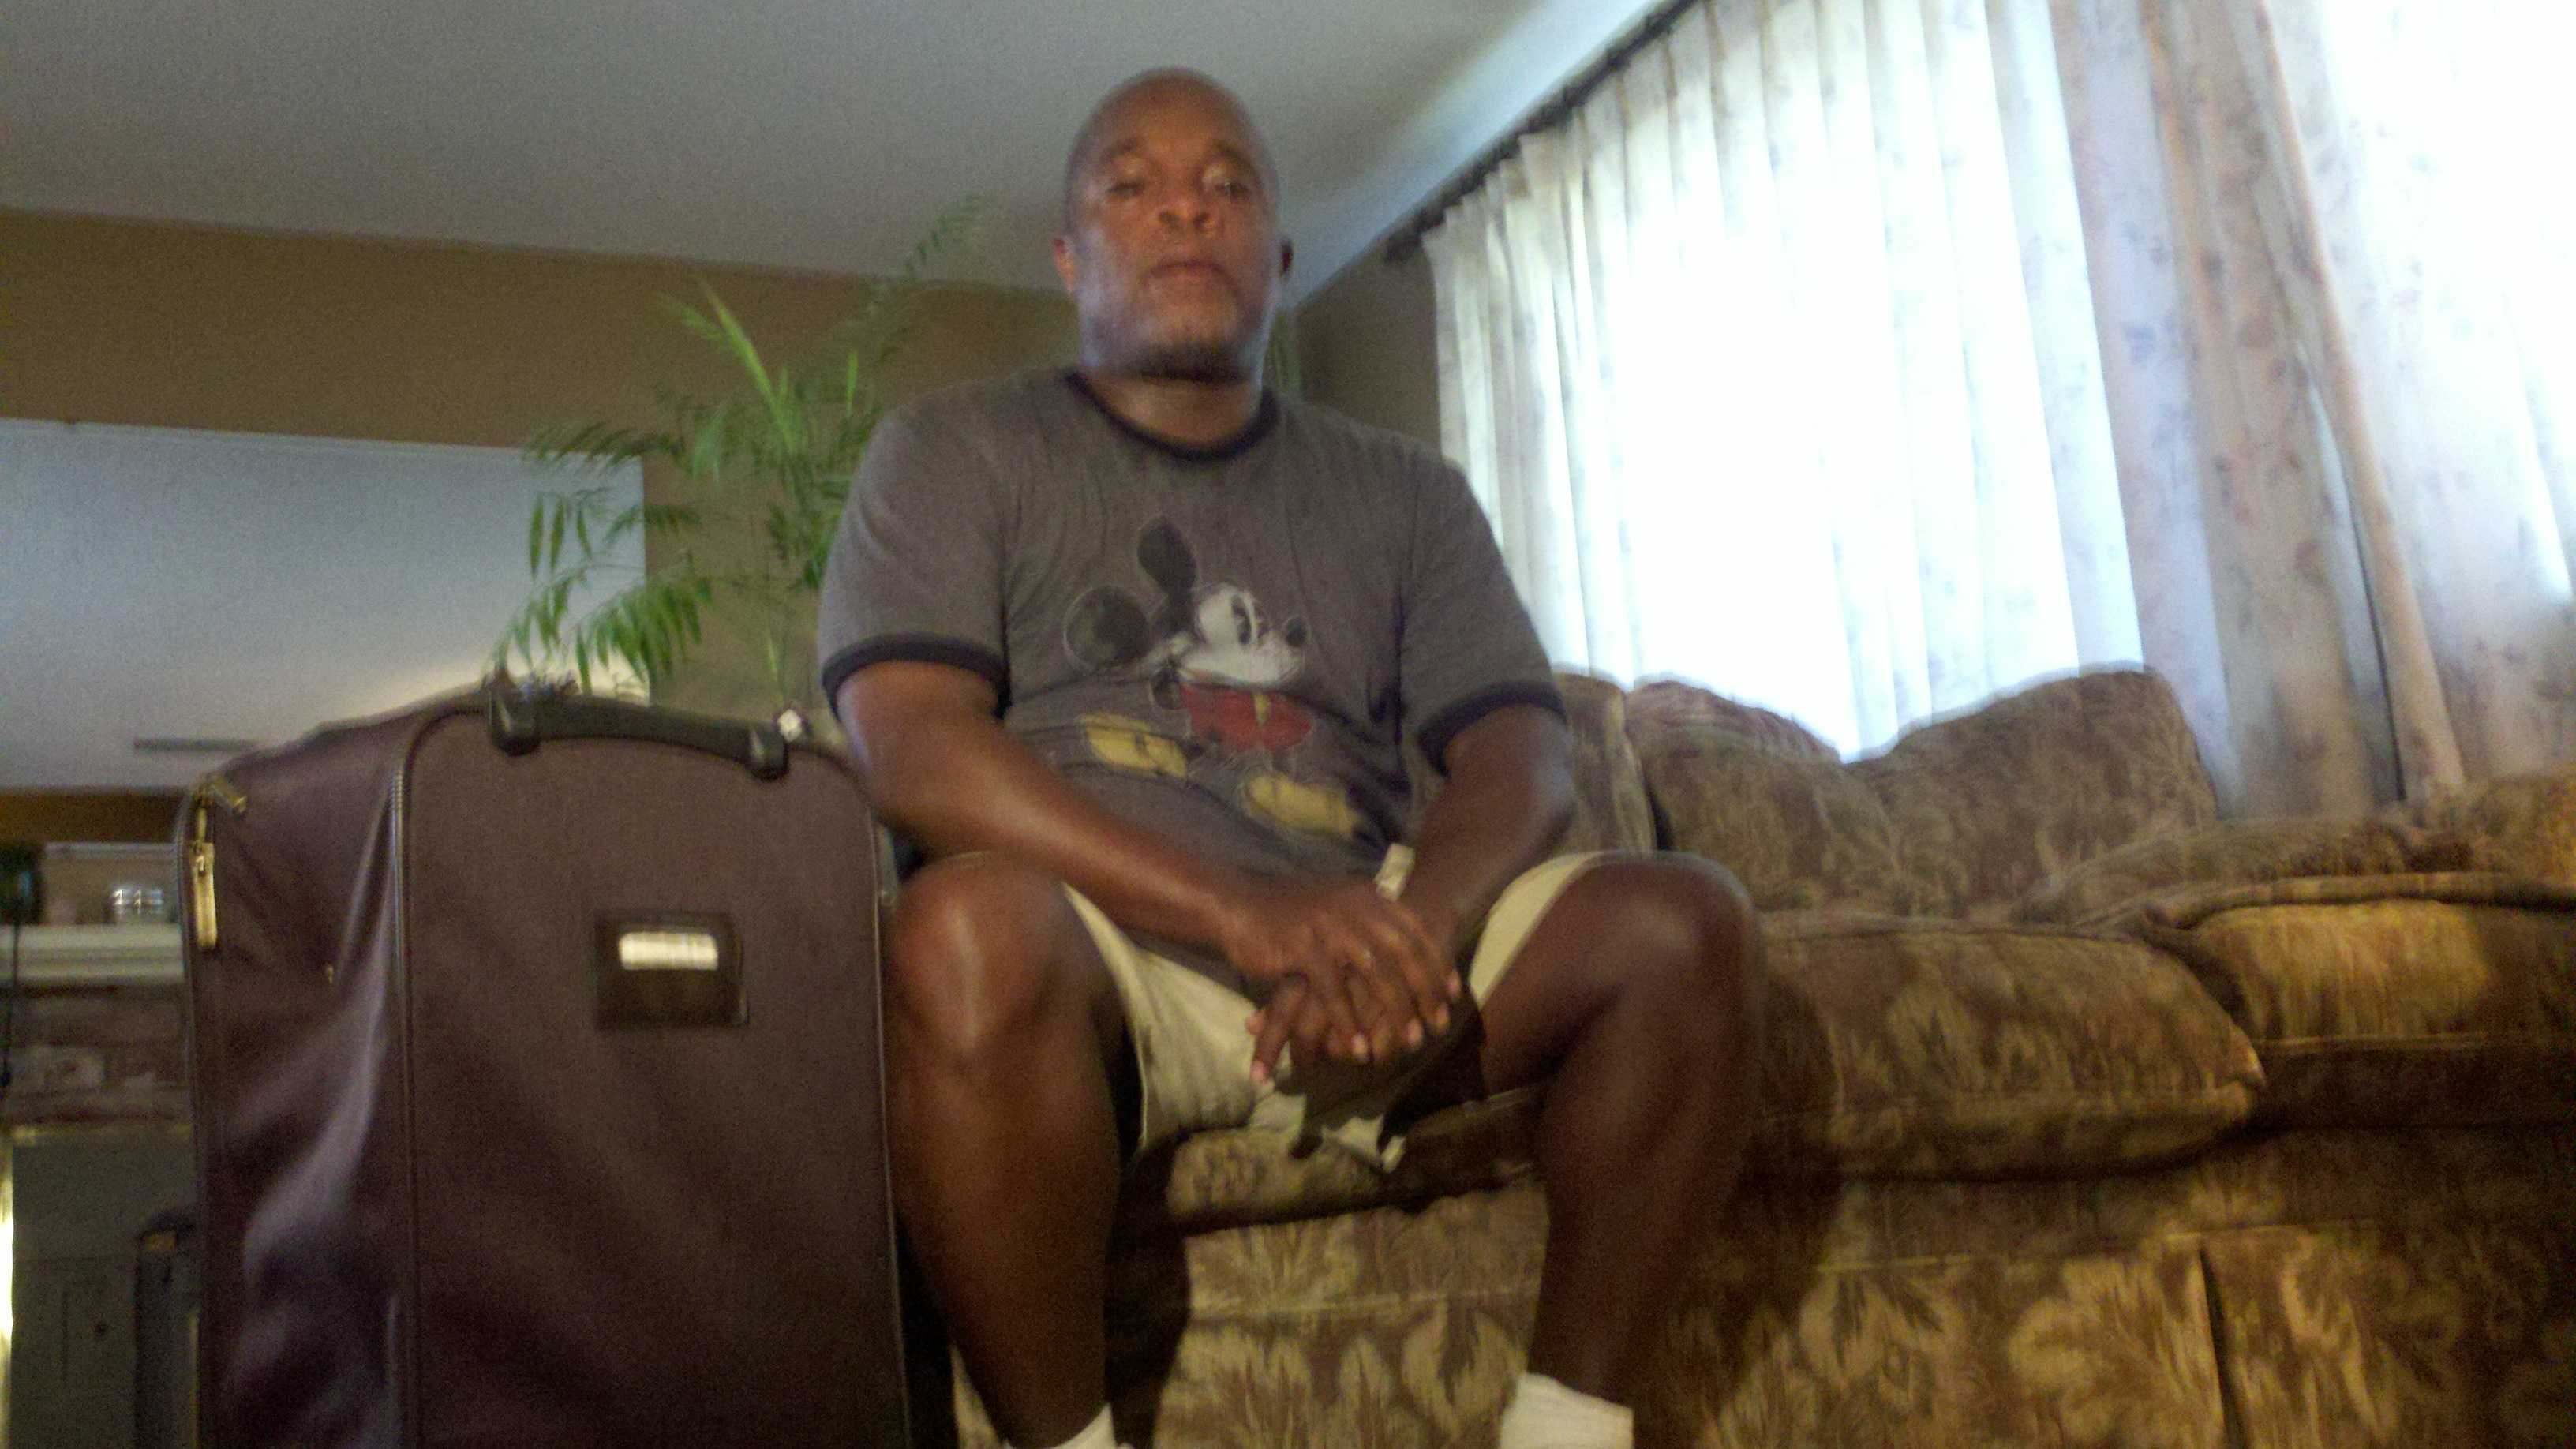 Jefferson McGee of Sacramento plans to be part of protests at the Republican National Convention.